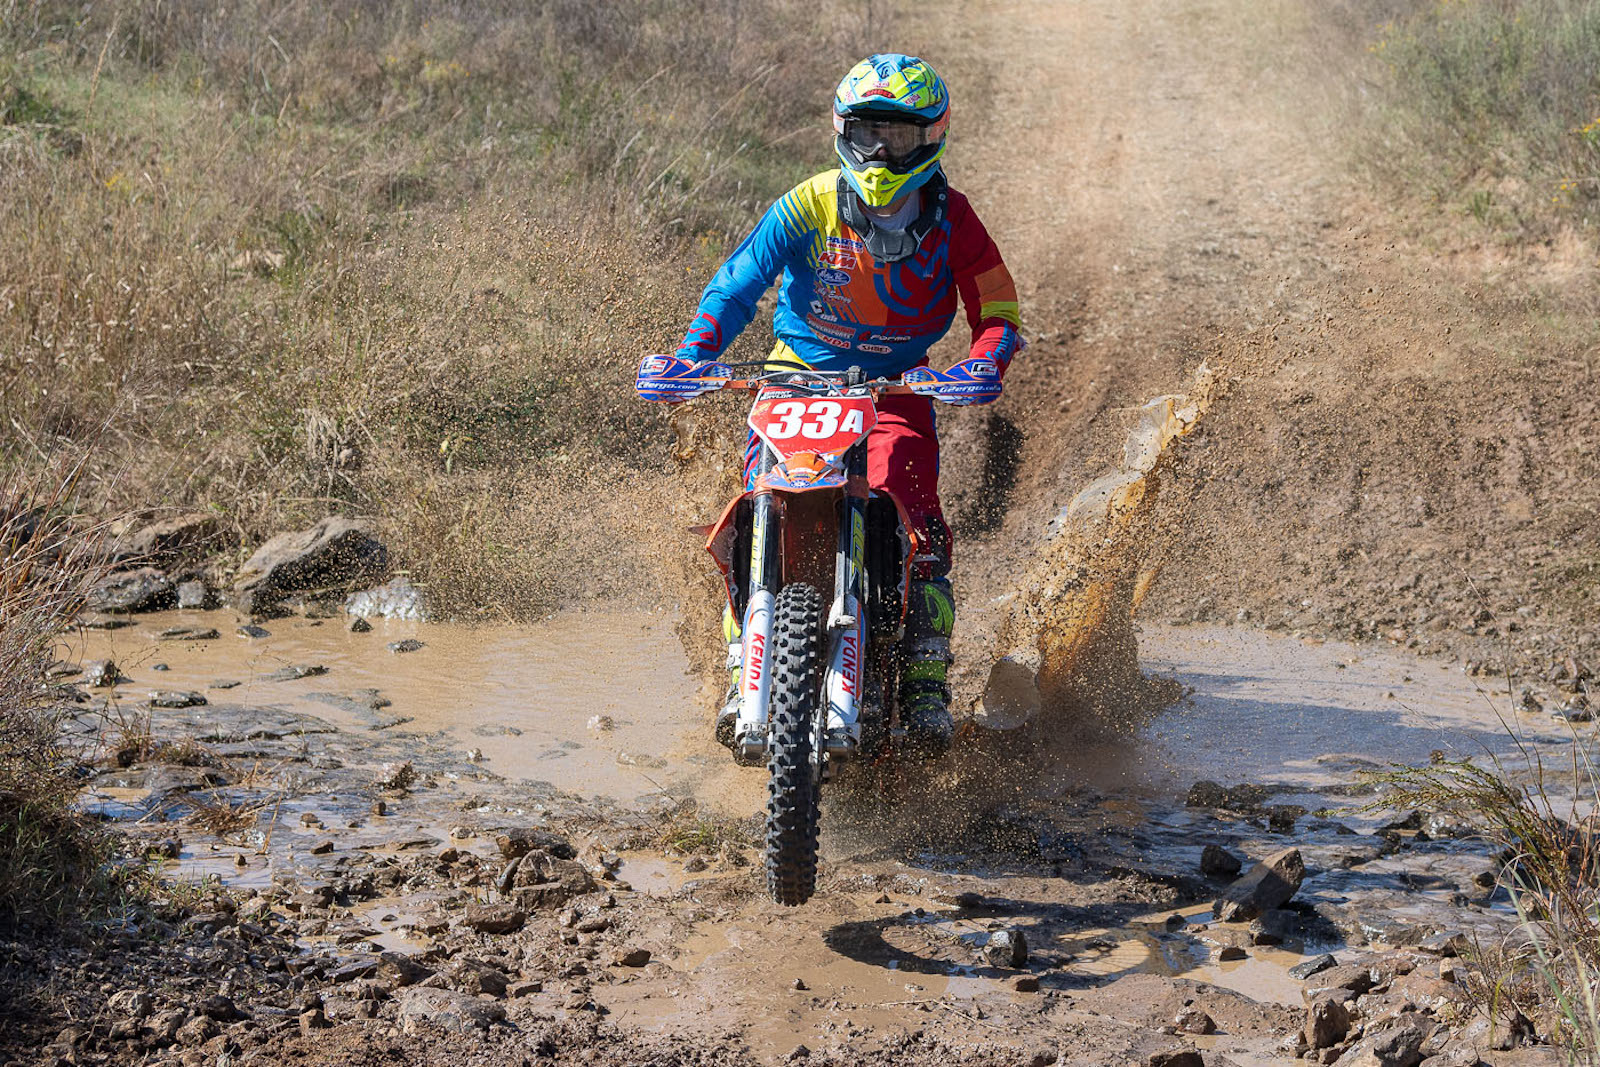 Results: Grant Baylor Wins Zink Ranch National Enduro